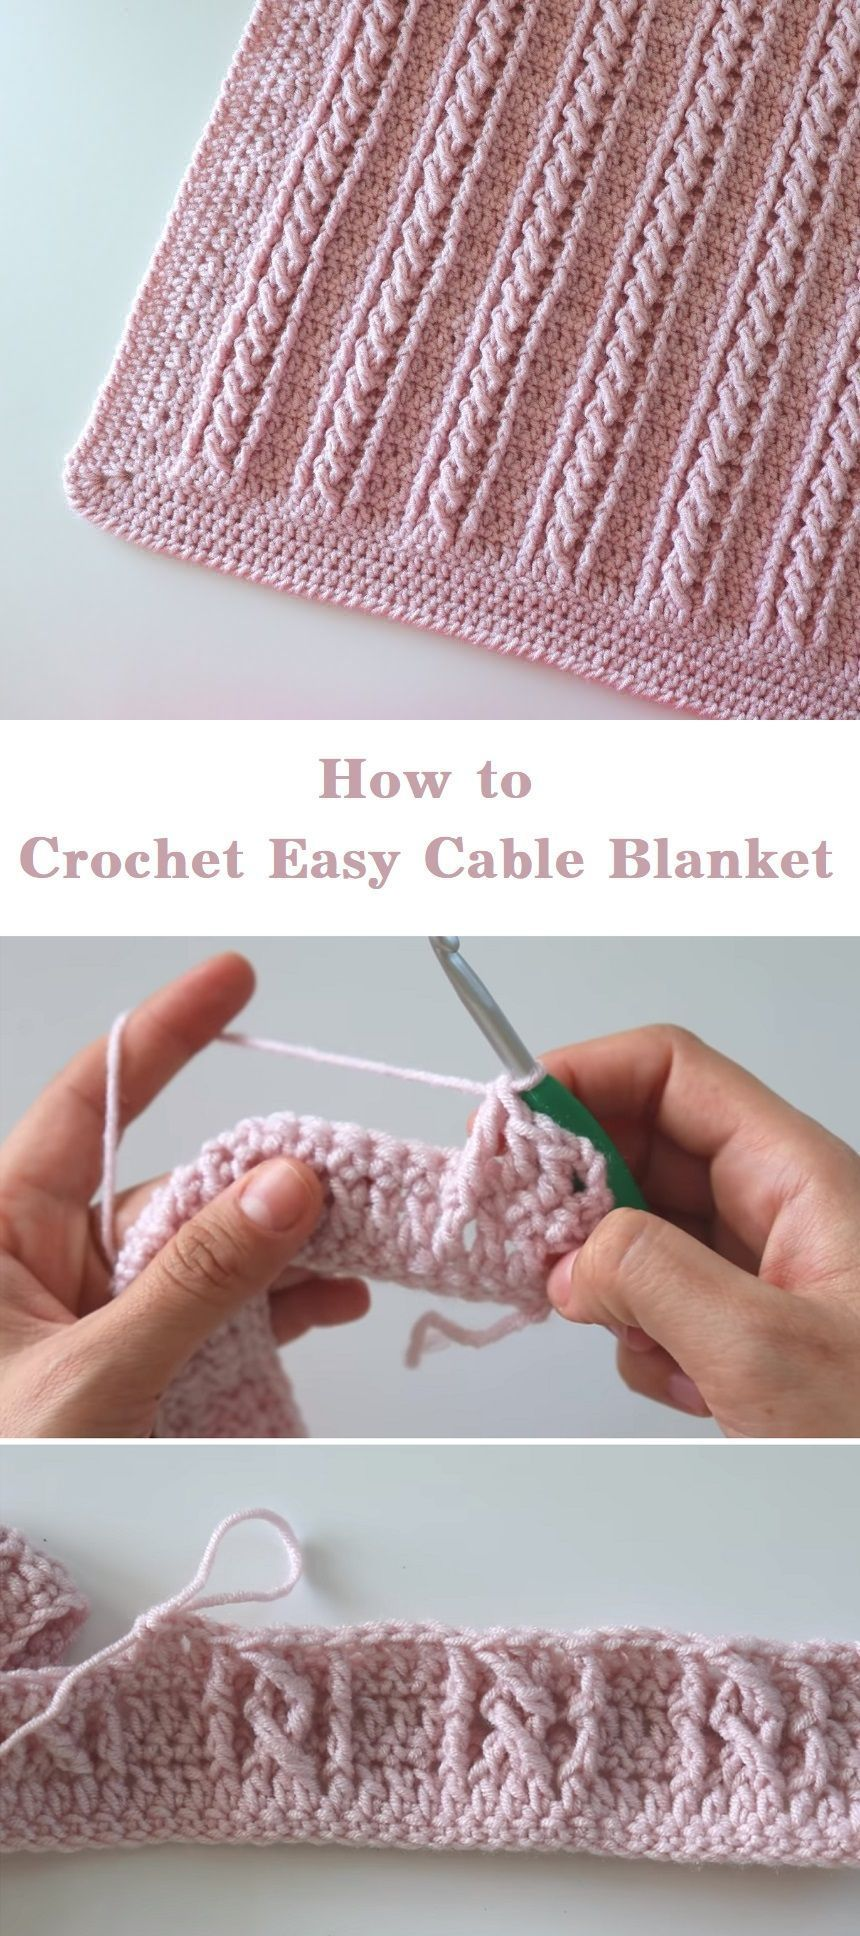 Photo of Fantastico CROCHET EASY CABLE BLANKET (ANFÄNGER) # Anfänger # Decke # Kabel #Cro …, # Anfänger …